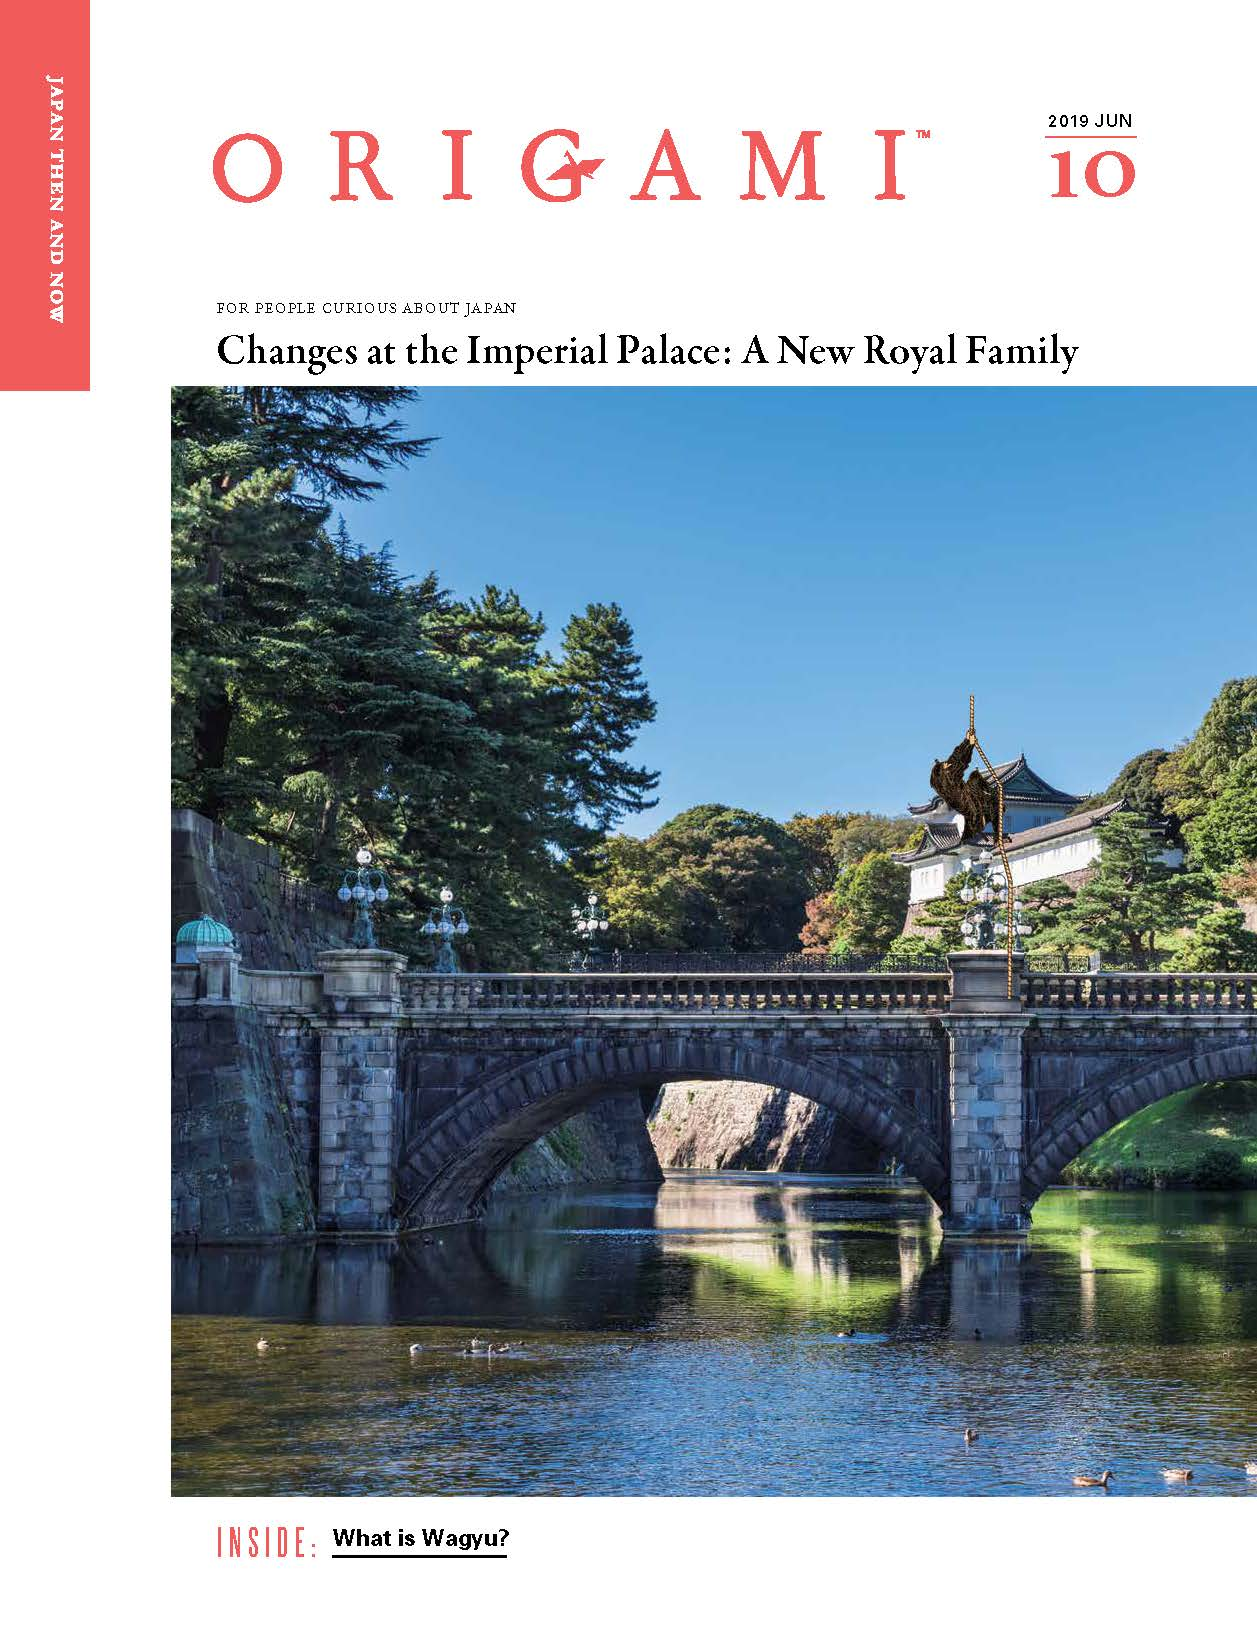 Changes at the Imperial Palace: A New Royal Family